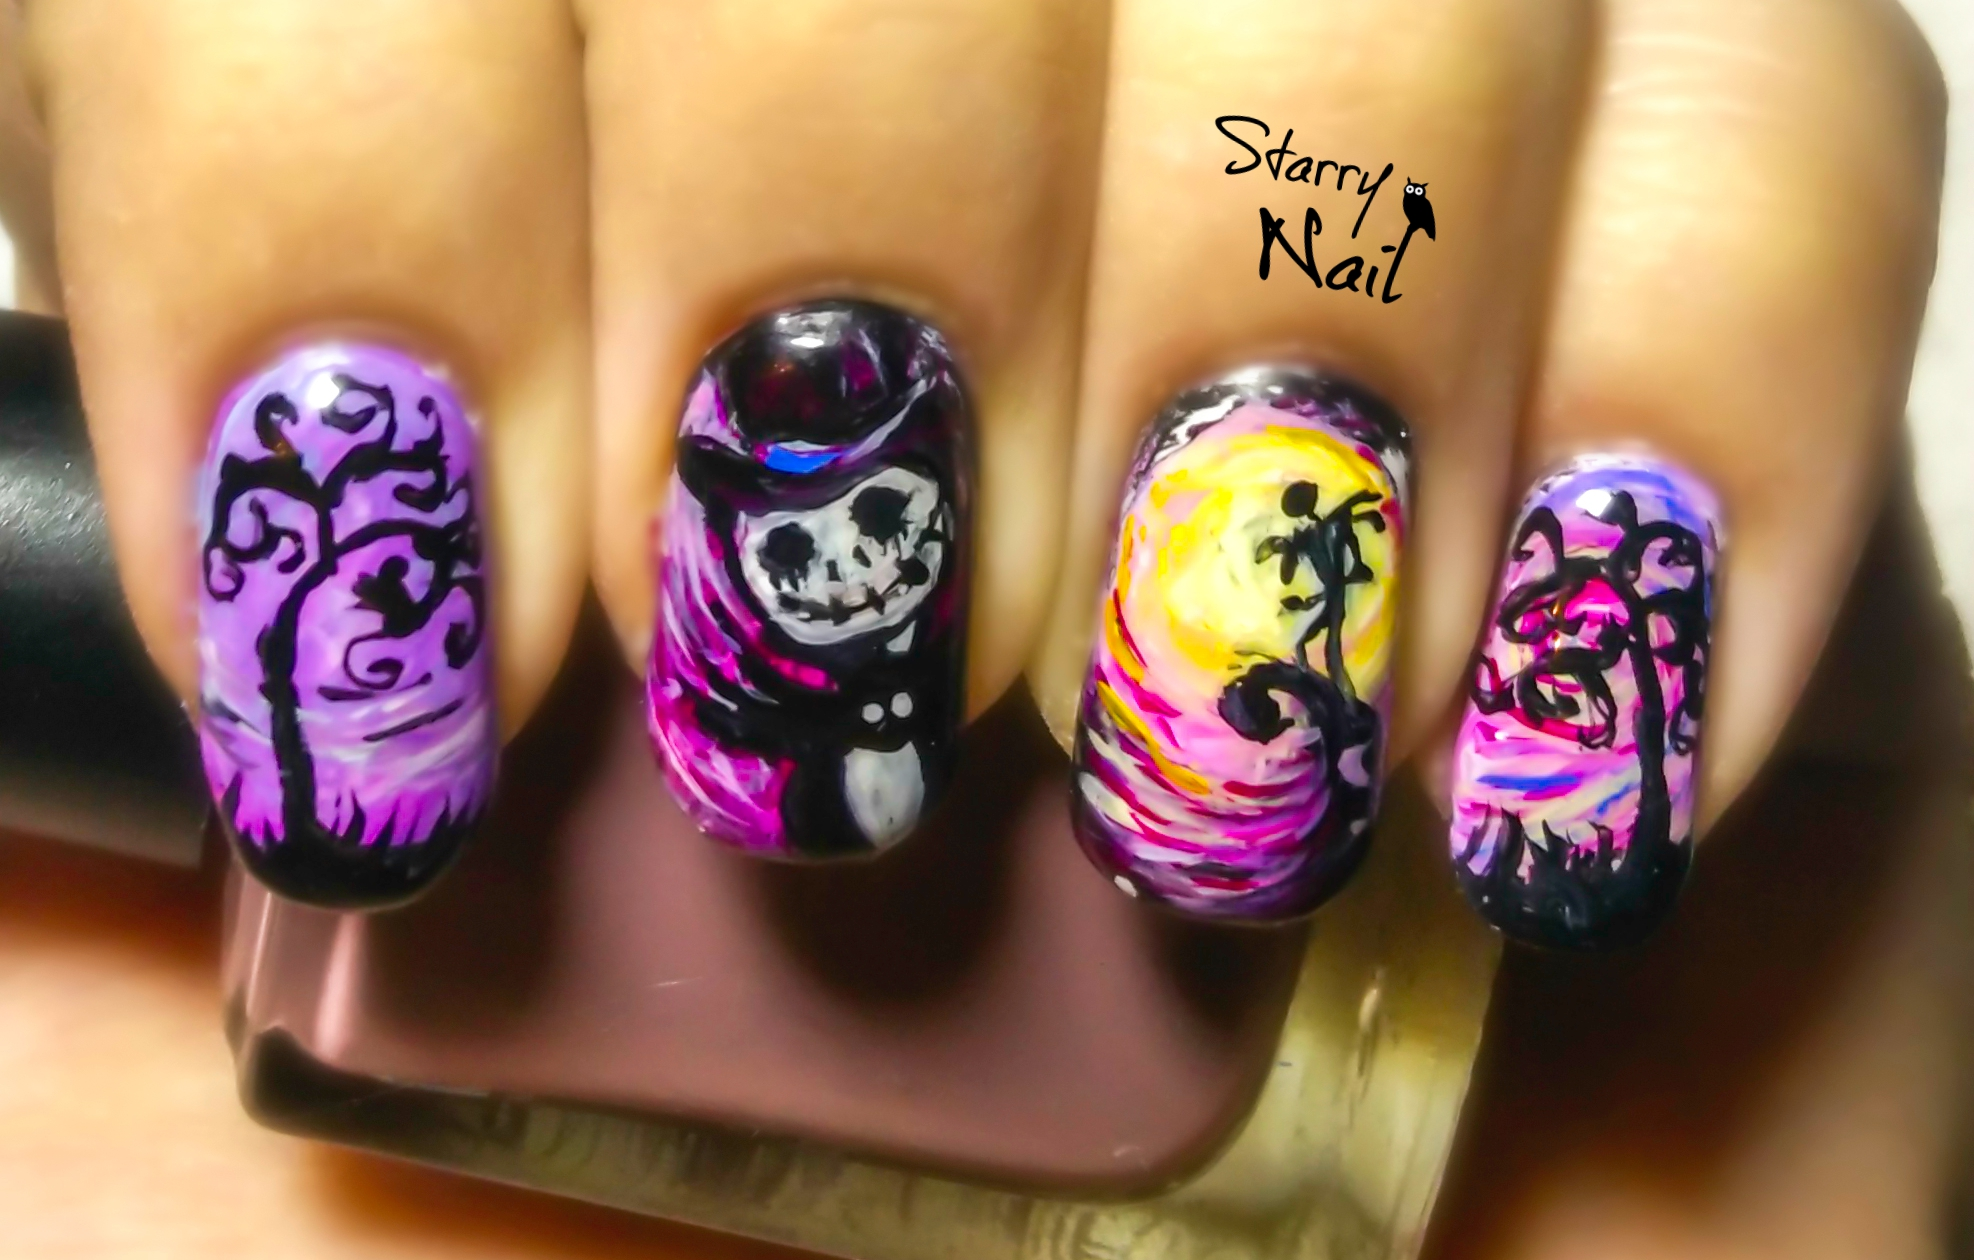 the nightmare before christmas nail art preview starrynail